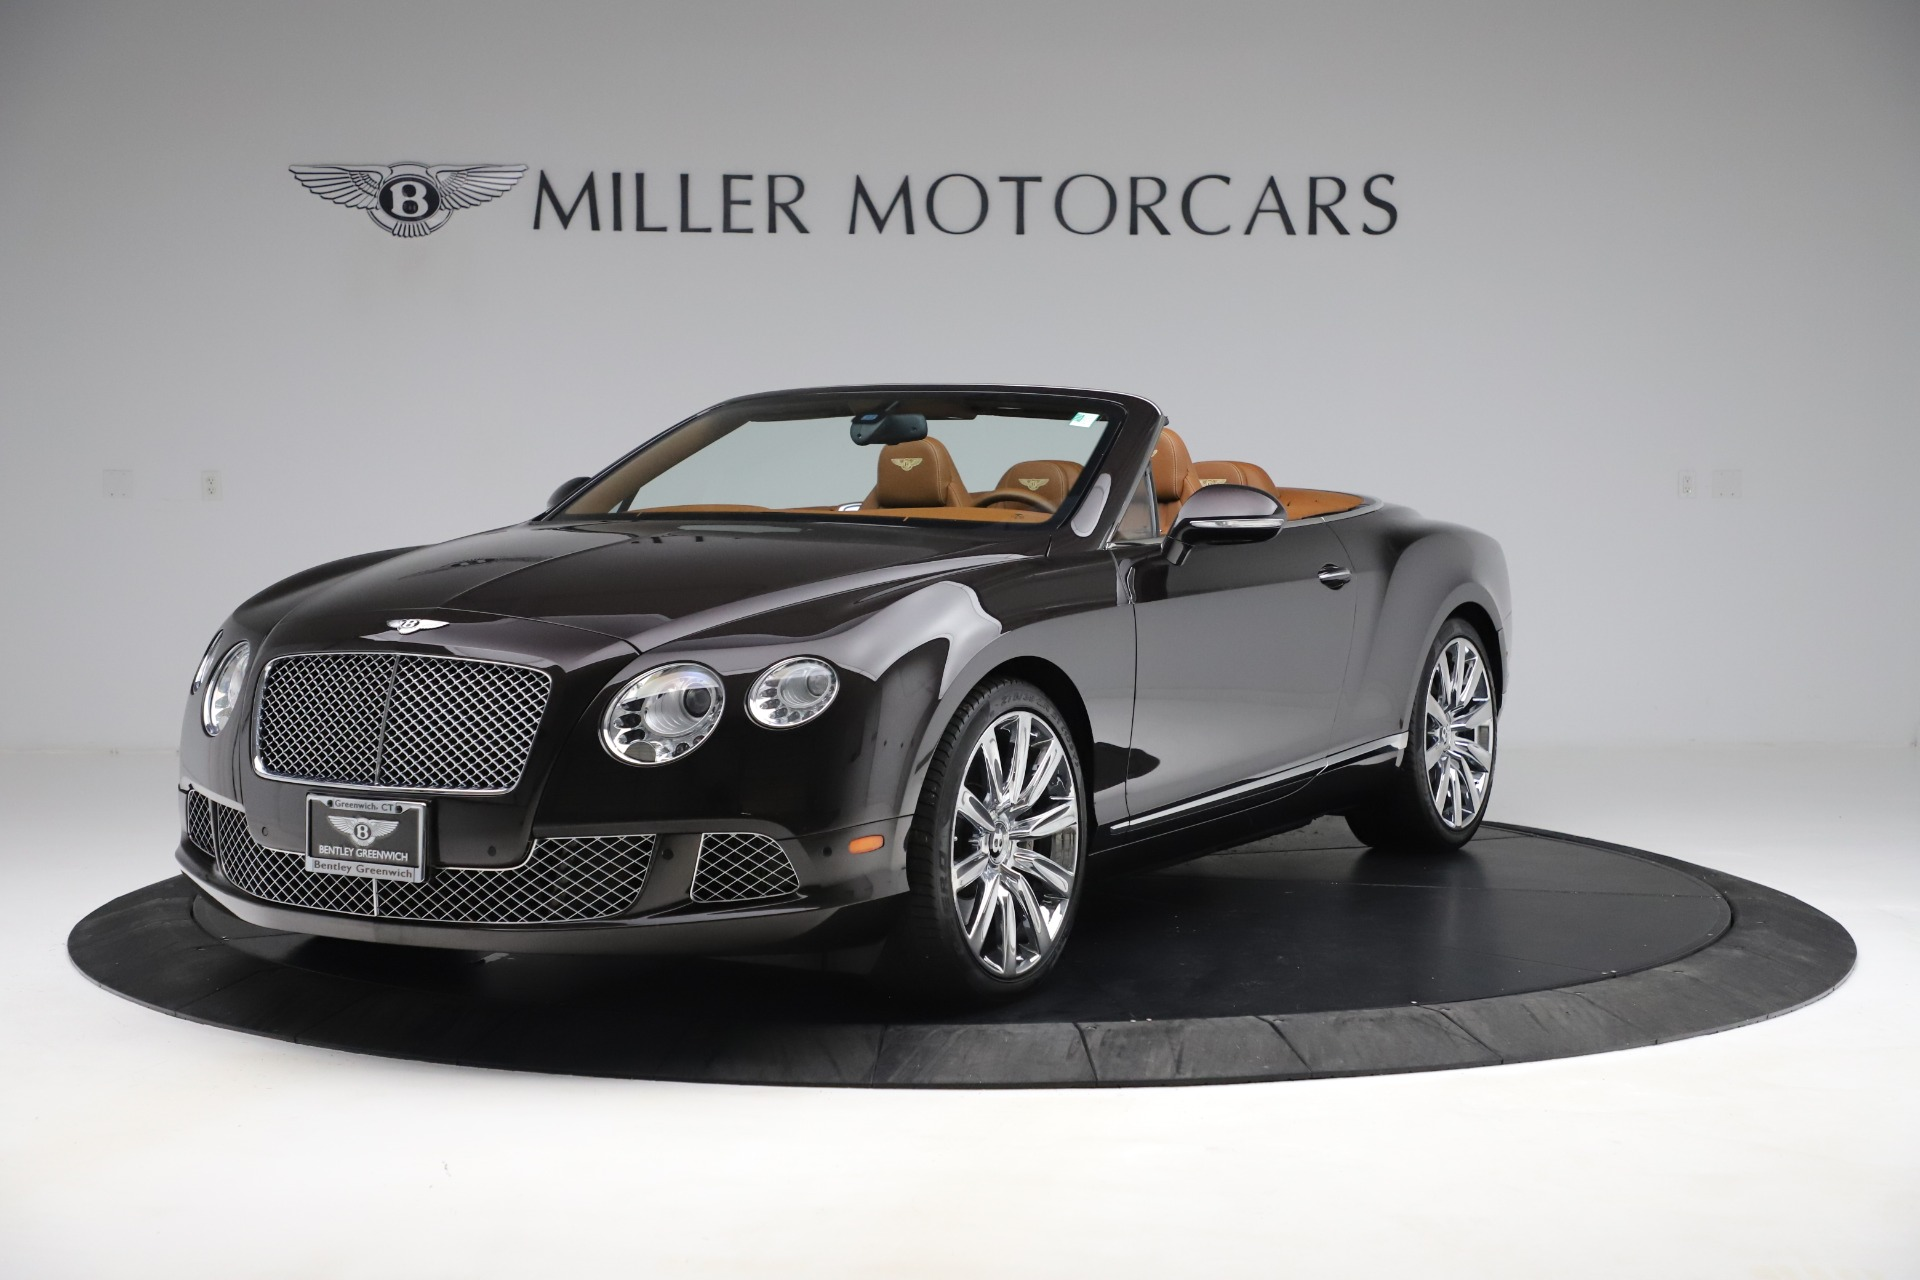 Used 2013 Bentley Continental GT W12 for sale Sold at Bugatti of Greenwich in Greenwich CT 06830 1